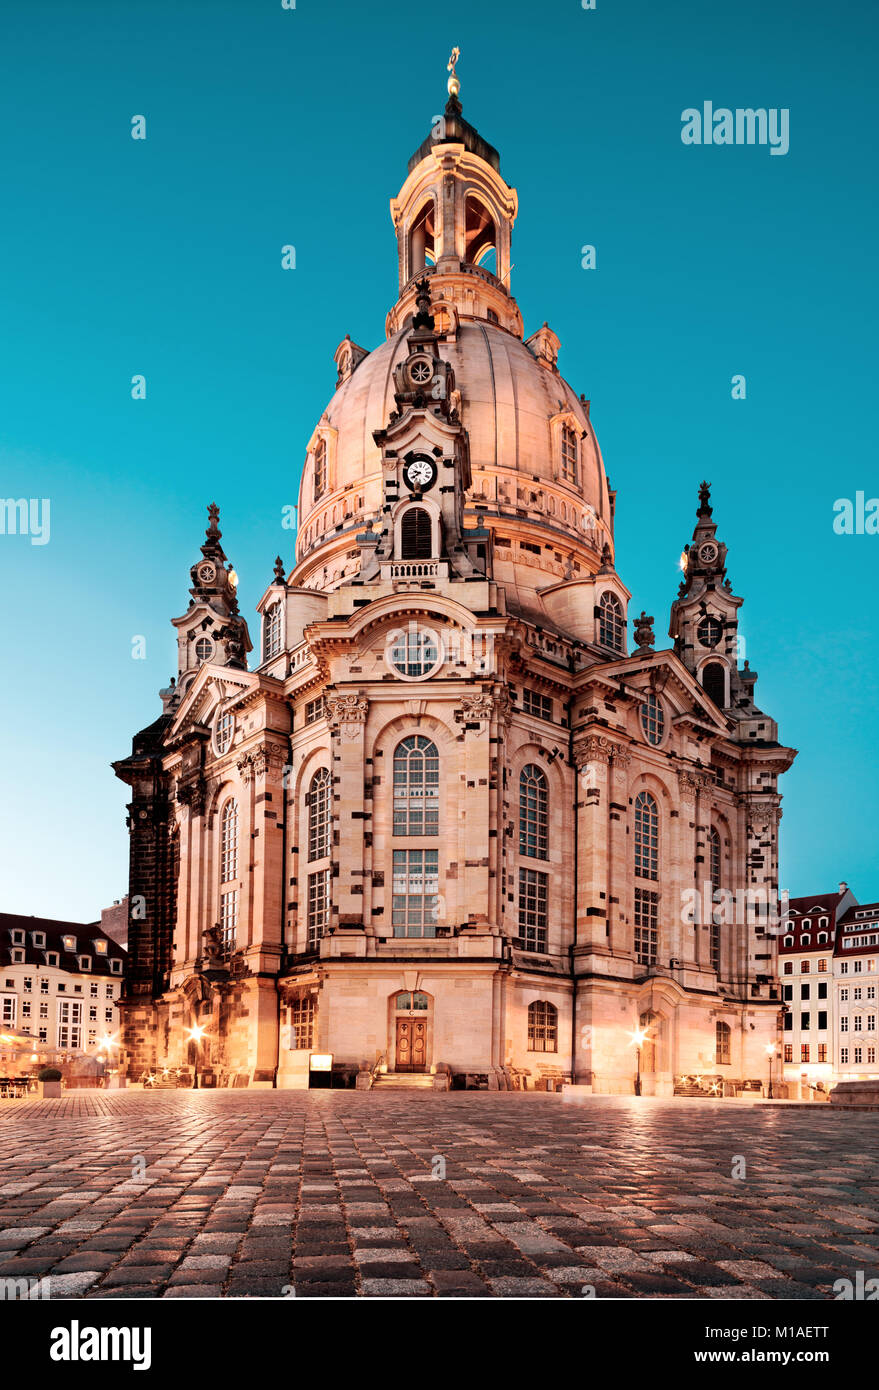 Frauenkirche at night in Dresden, Germany, tinted image - Stock Image